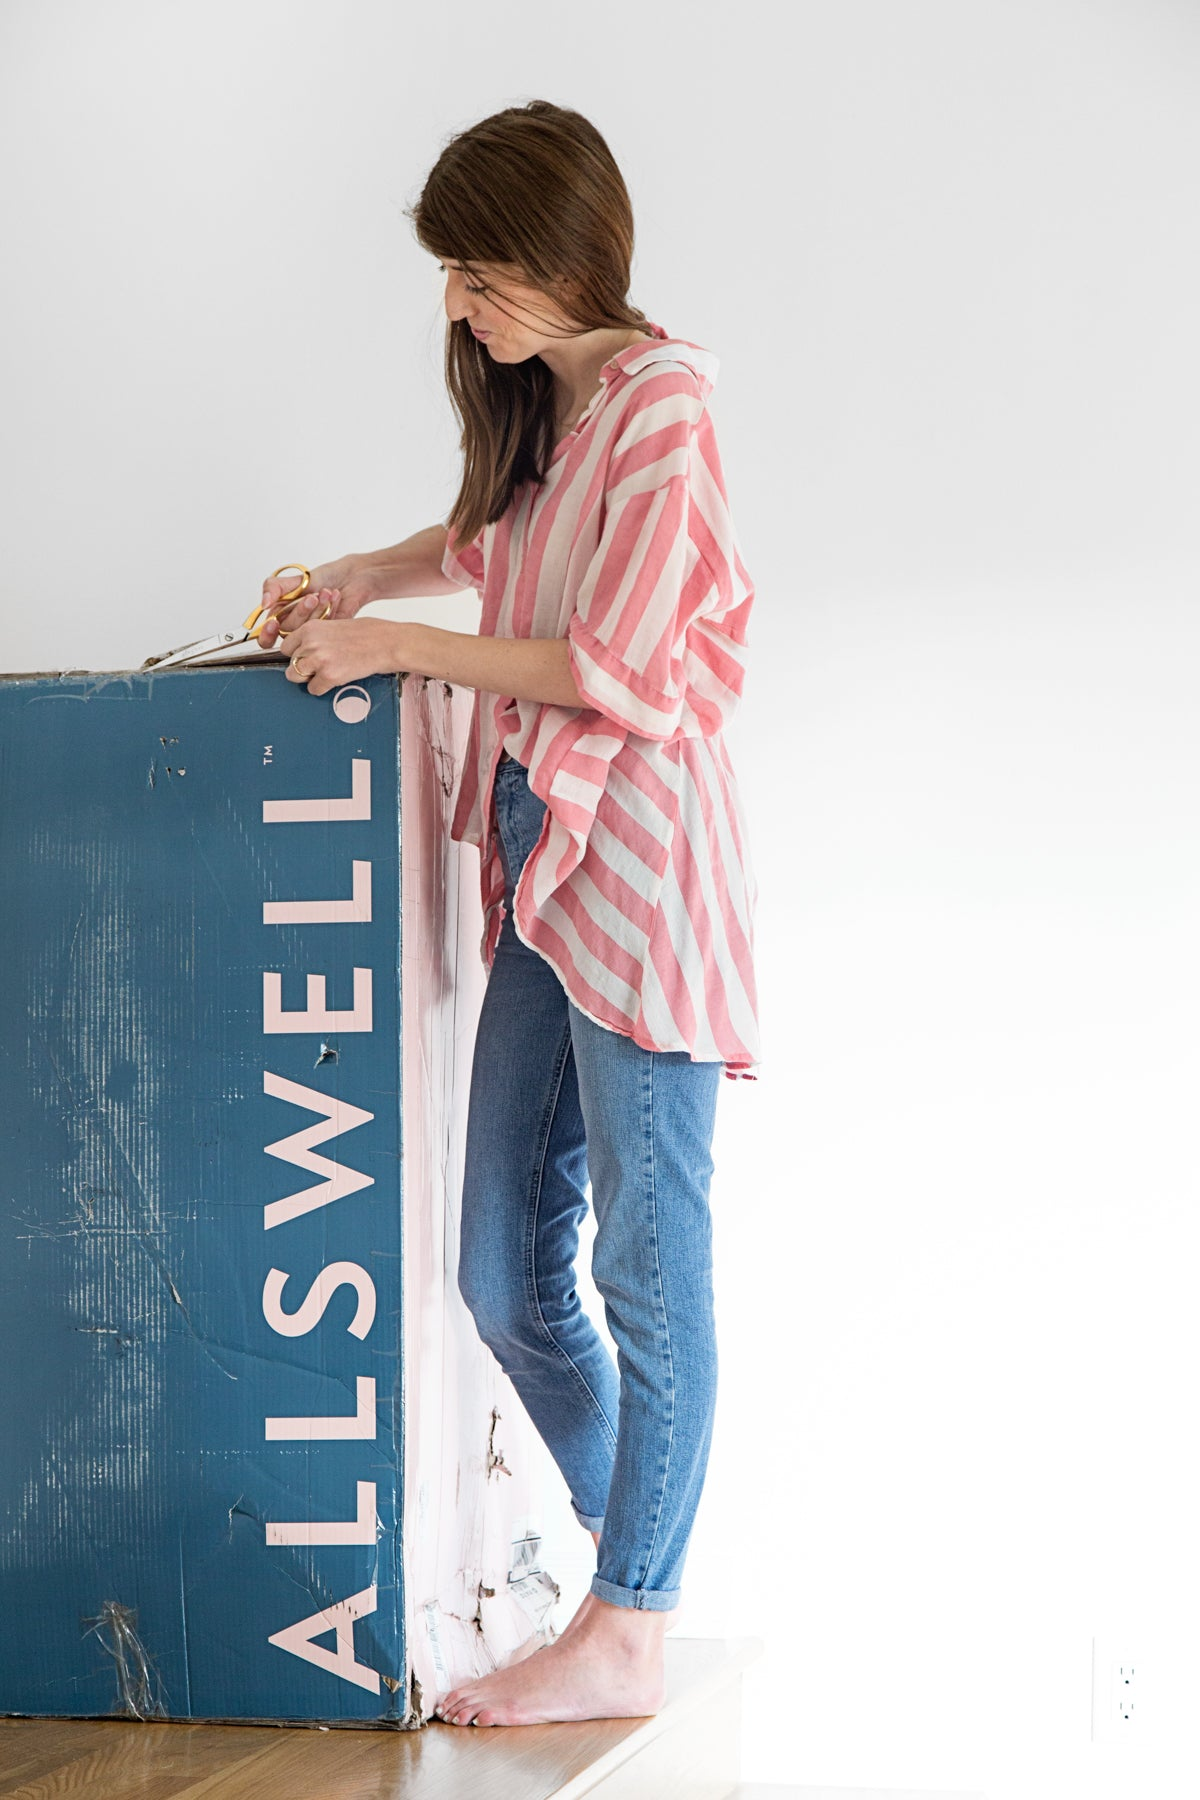 Blogger Kelly Mindell of Studio DIY Opening Allswell Mattress from Box